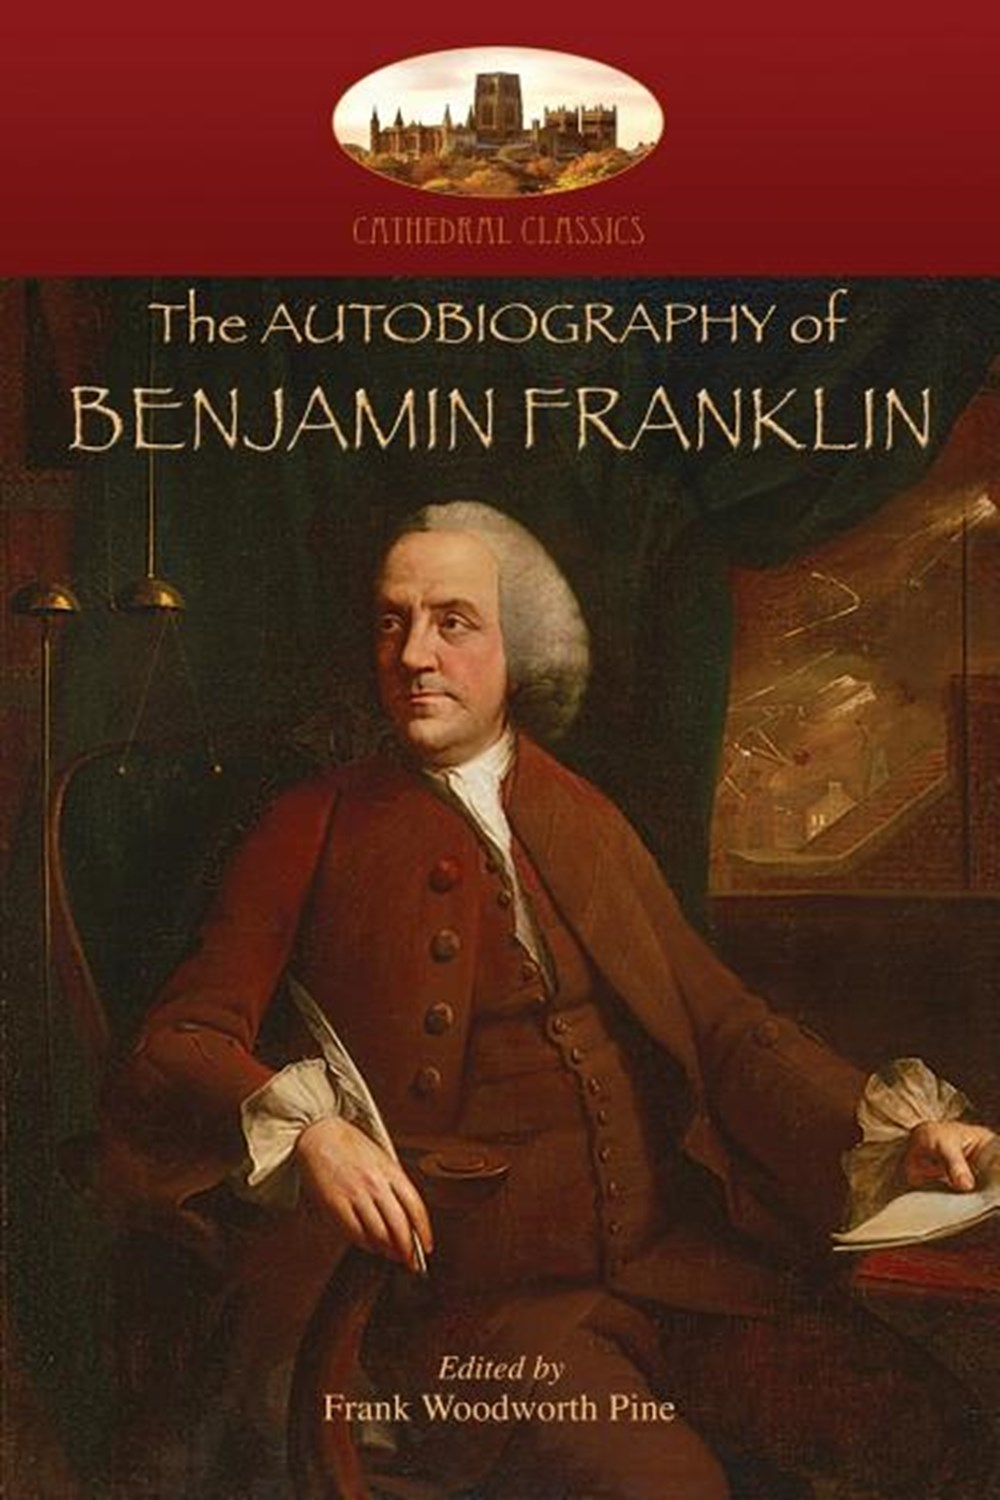 Autobiography of Benjamin Franklin Edited by Frank Woodworth Pine, with notes and appendix. (Aziloth